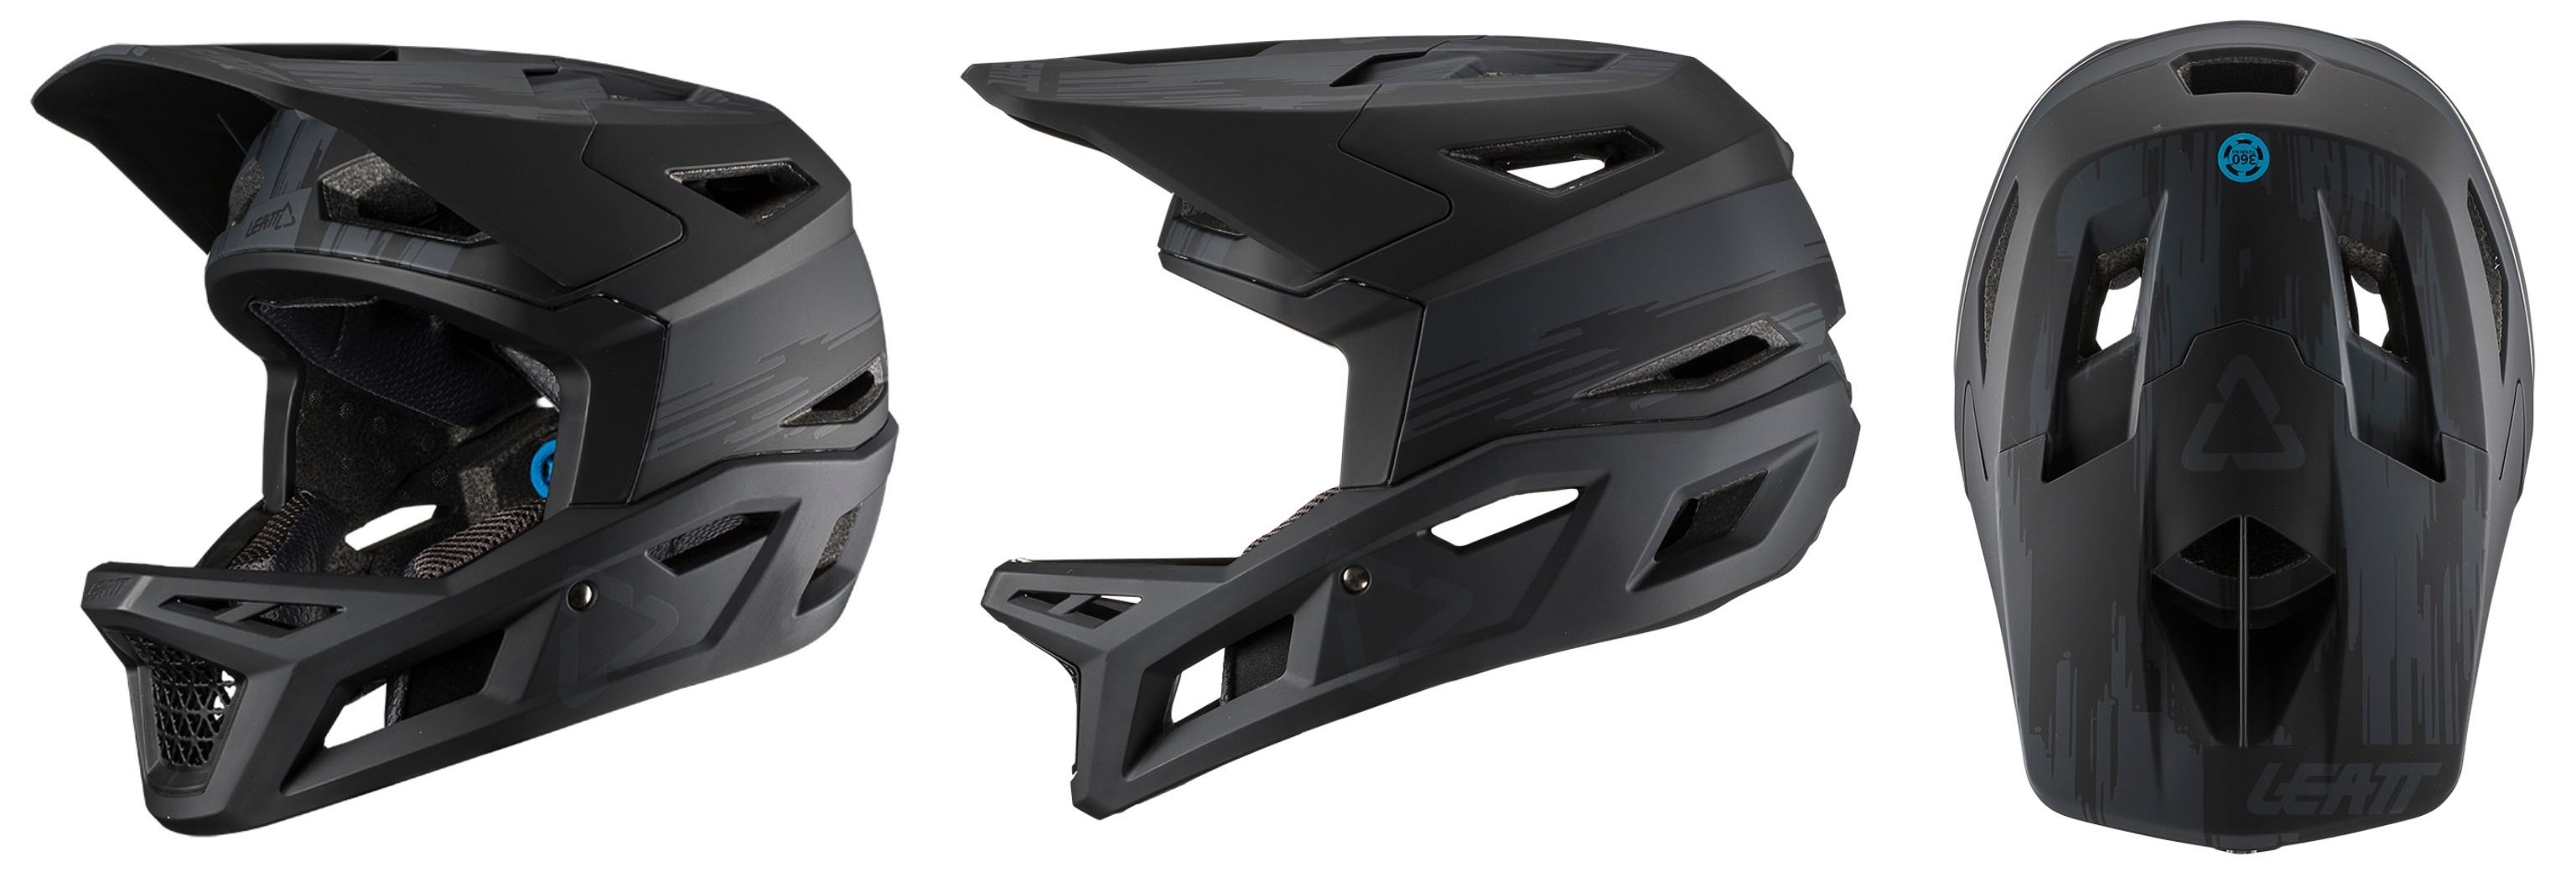 The Leatt DBX 4.0 Helmet in Black colour